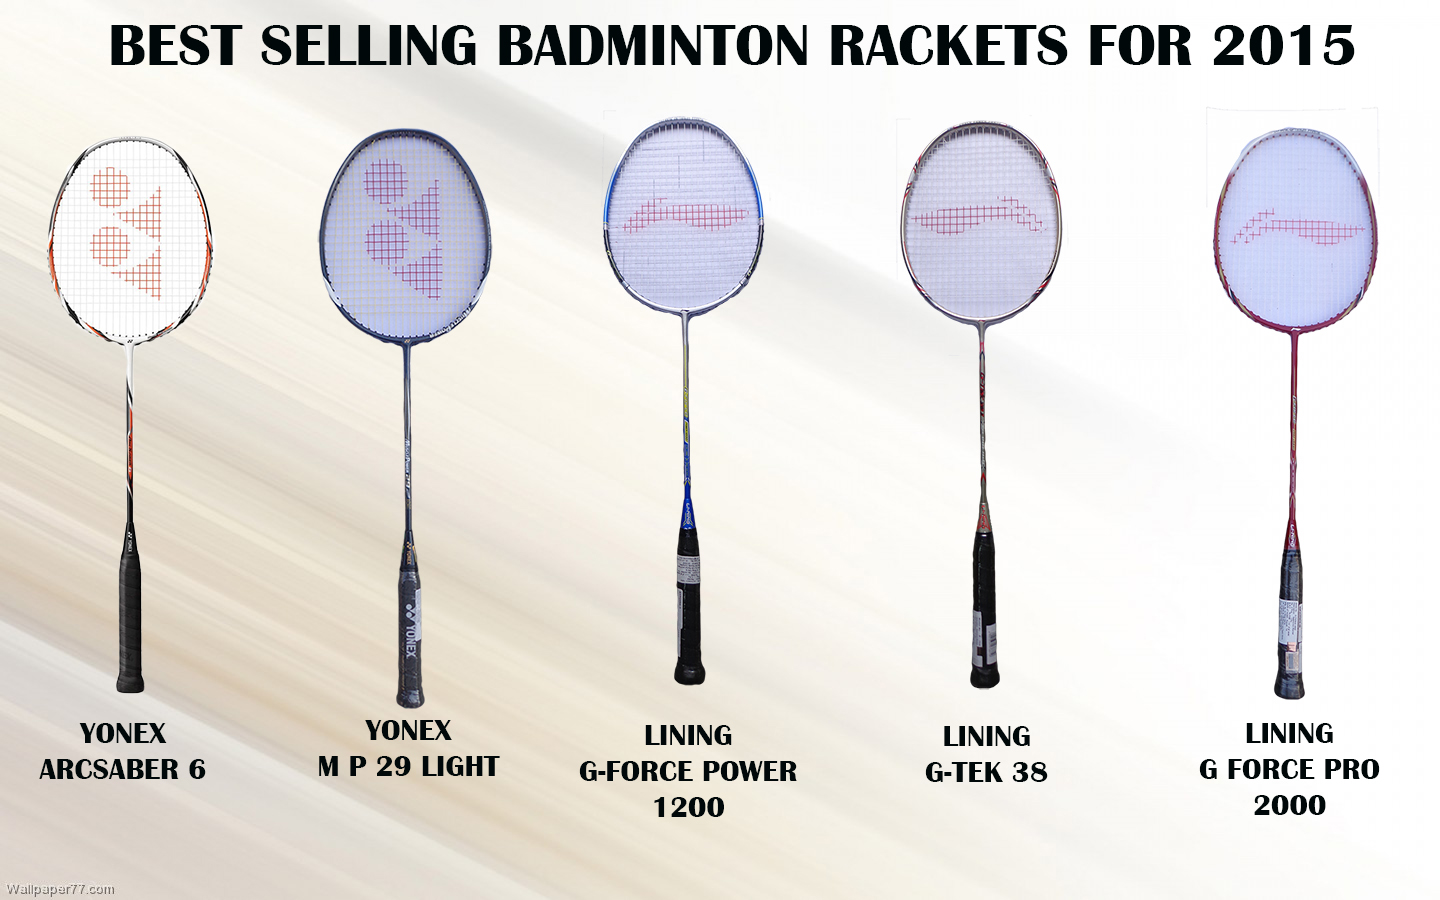 BEST SELLING BADMINTON RACKETS FOR 2015